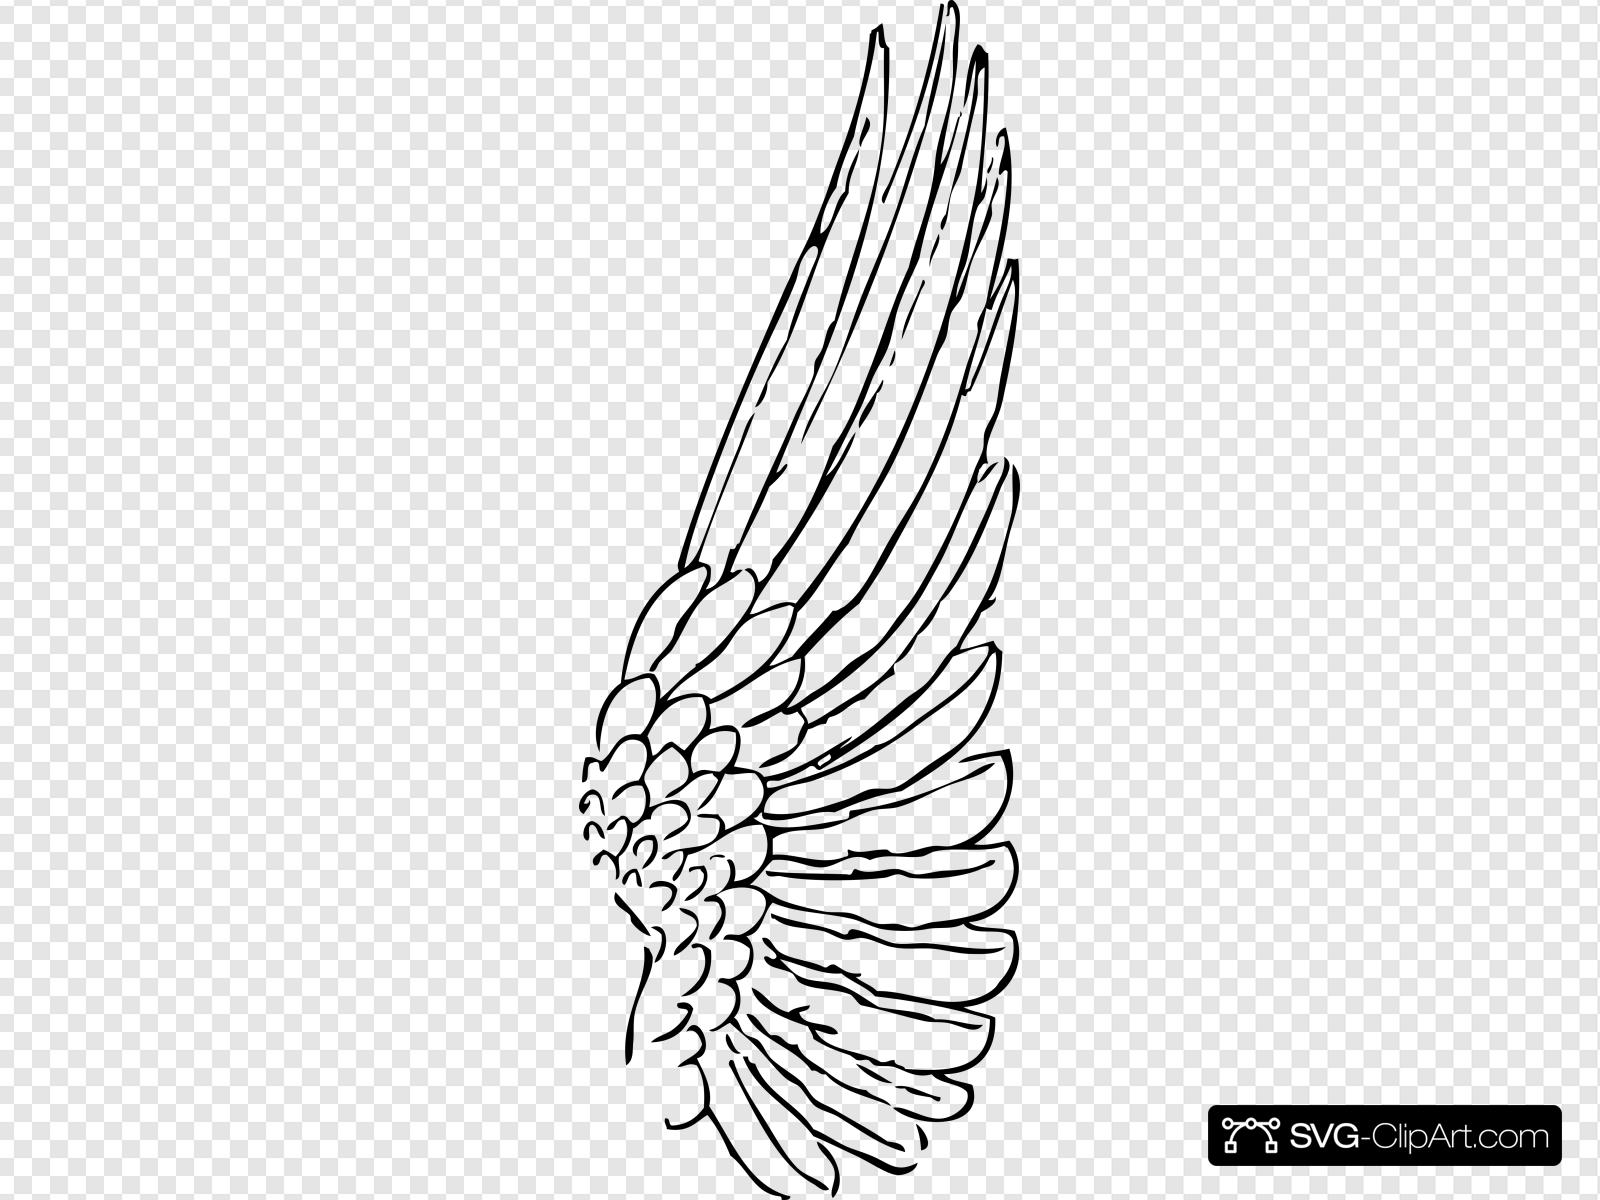 Clip art icon and. Wing clipart outline